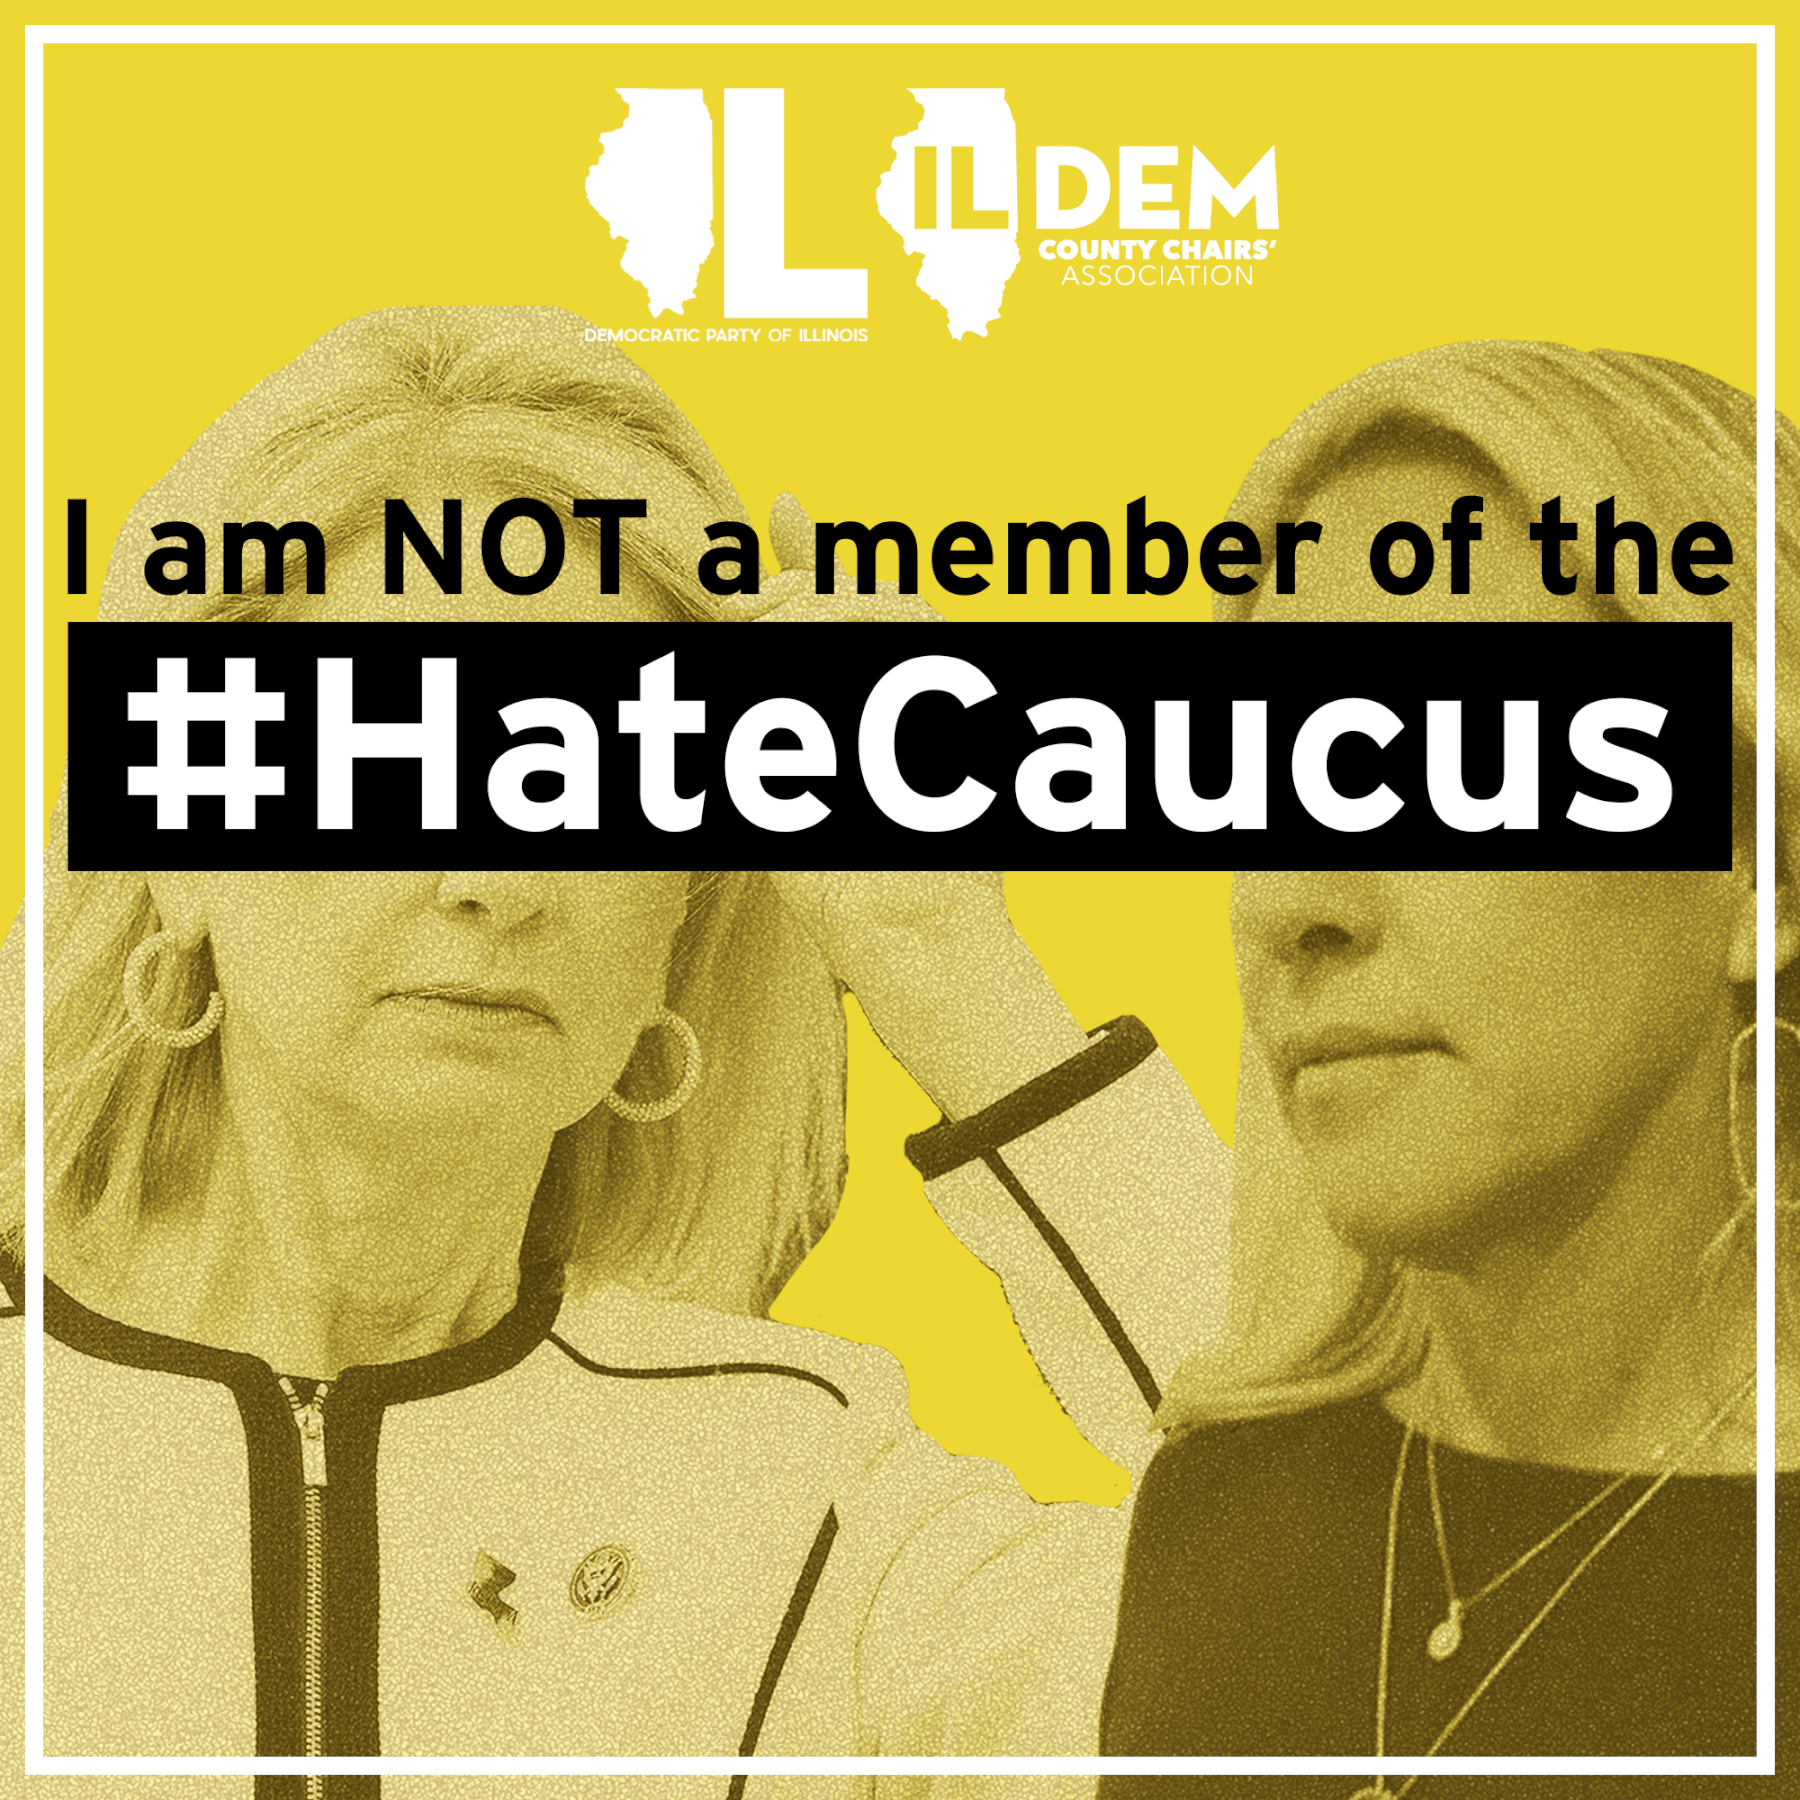 Mary Miller and Marjorie Taylor Greene Do Not Represent Illinois